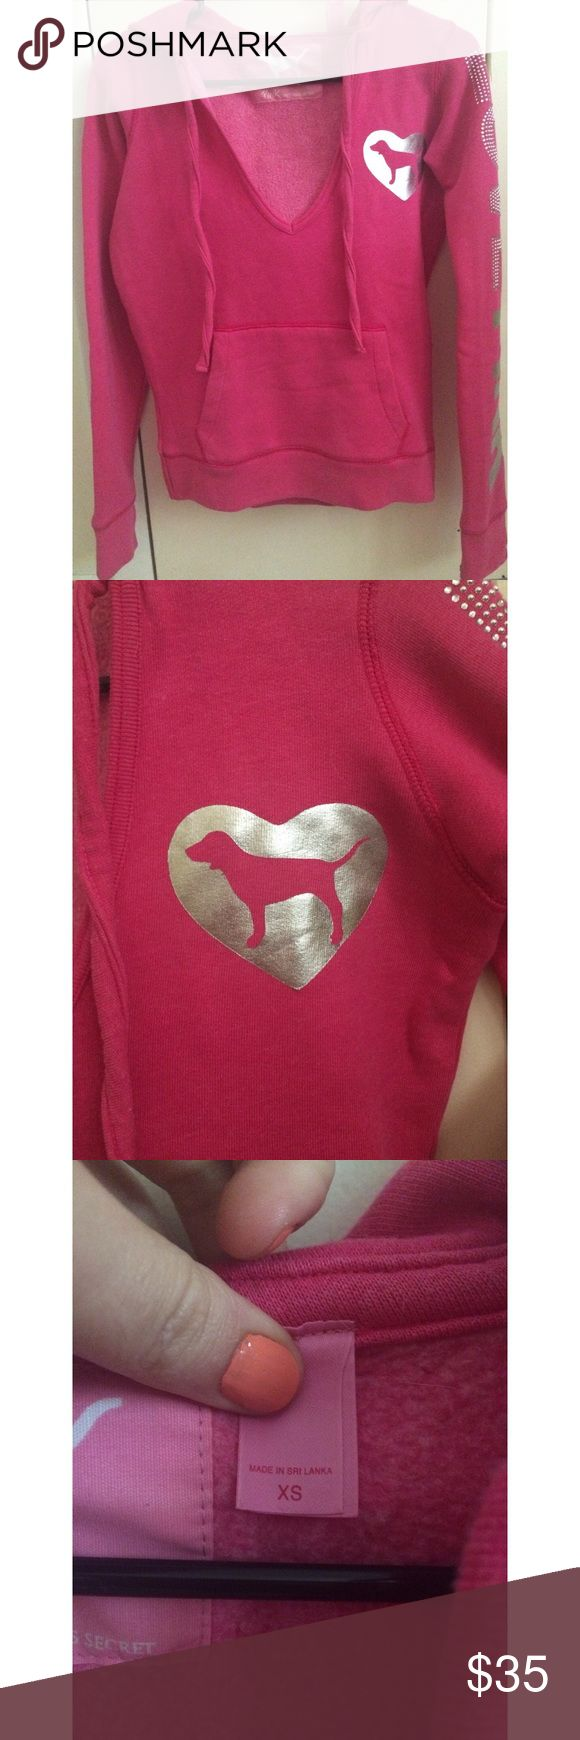 VS Pink Hoodie Hot pink VS Pink hoodie w/ sparkly details!  Too small on me, would fit XS/S quite well. No trades, flexible on offers. Thanks  PINK Victoria's Secret Jackets & Coats